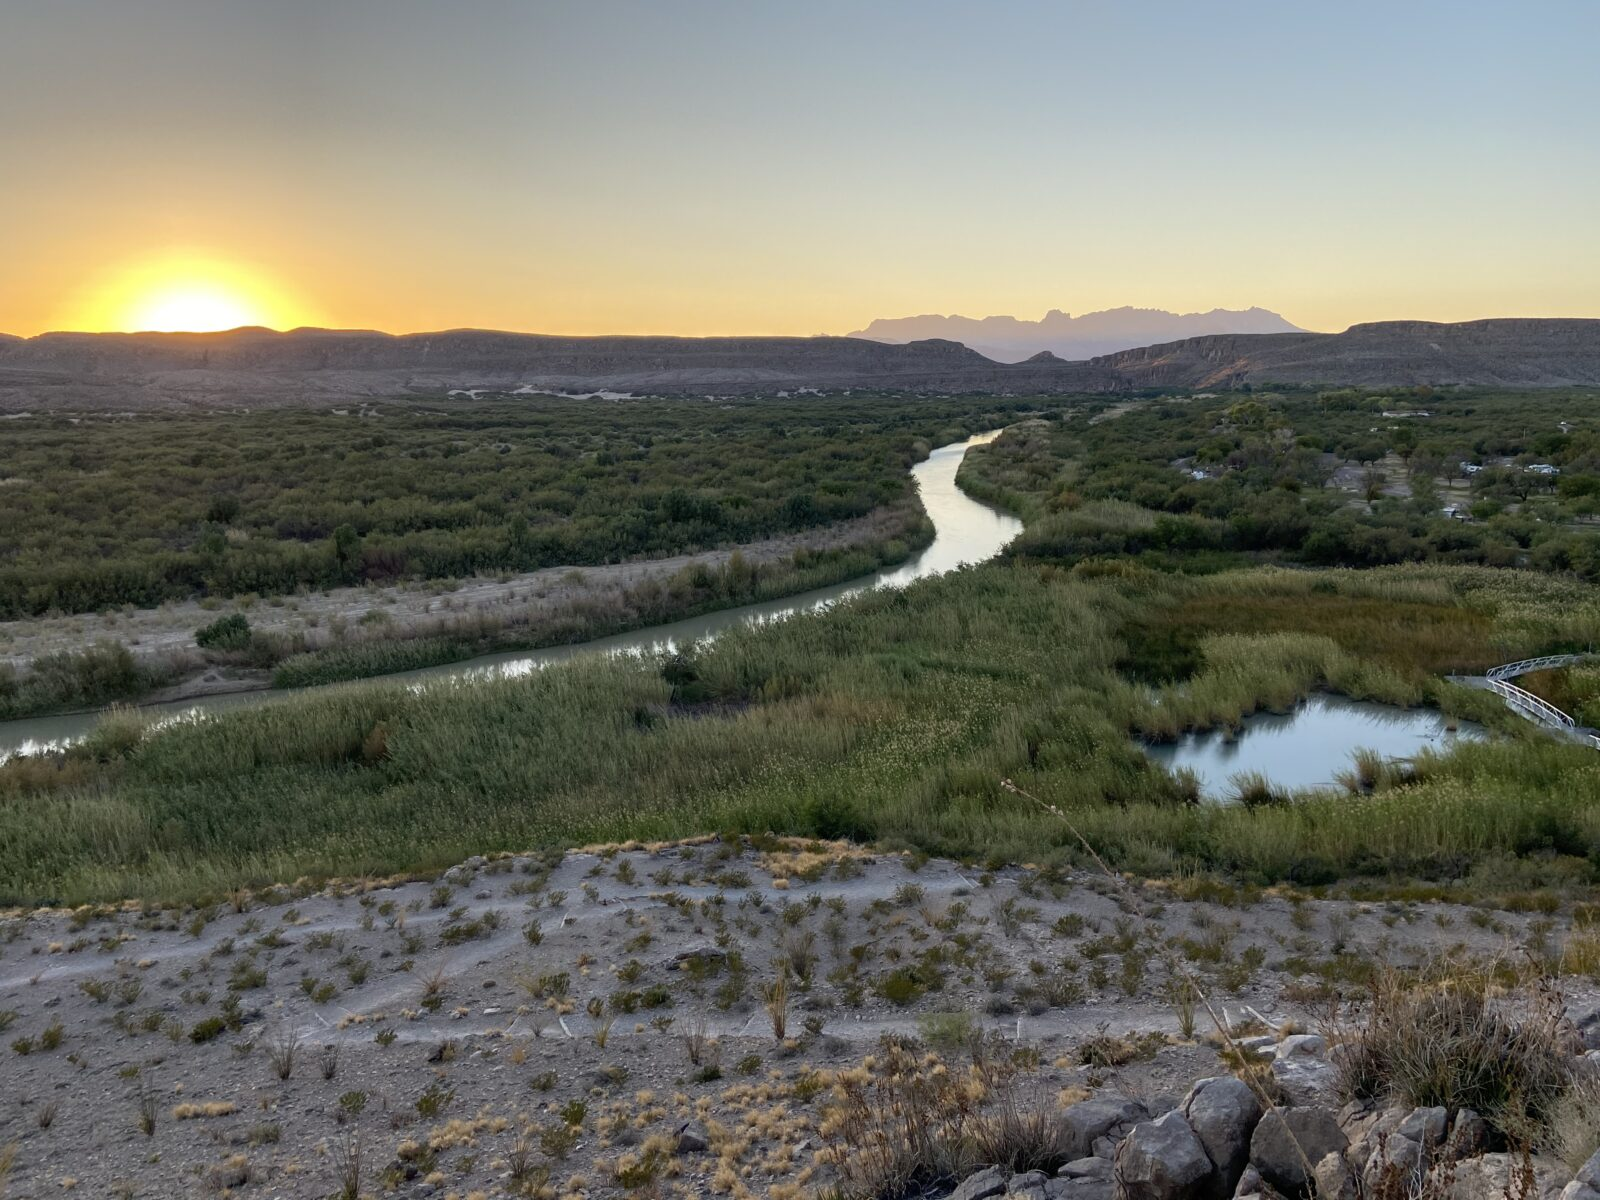 A spectacular sunset from the Rio Grande Overlook Trail in Big Bend National Park.